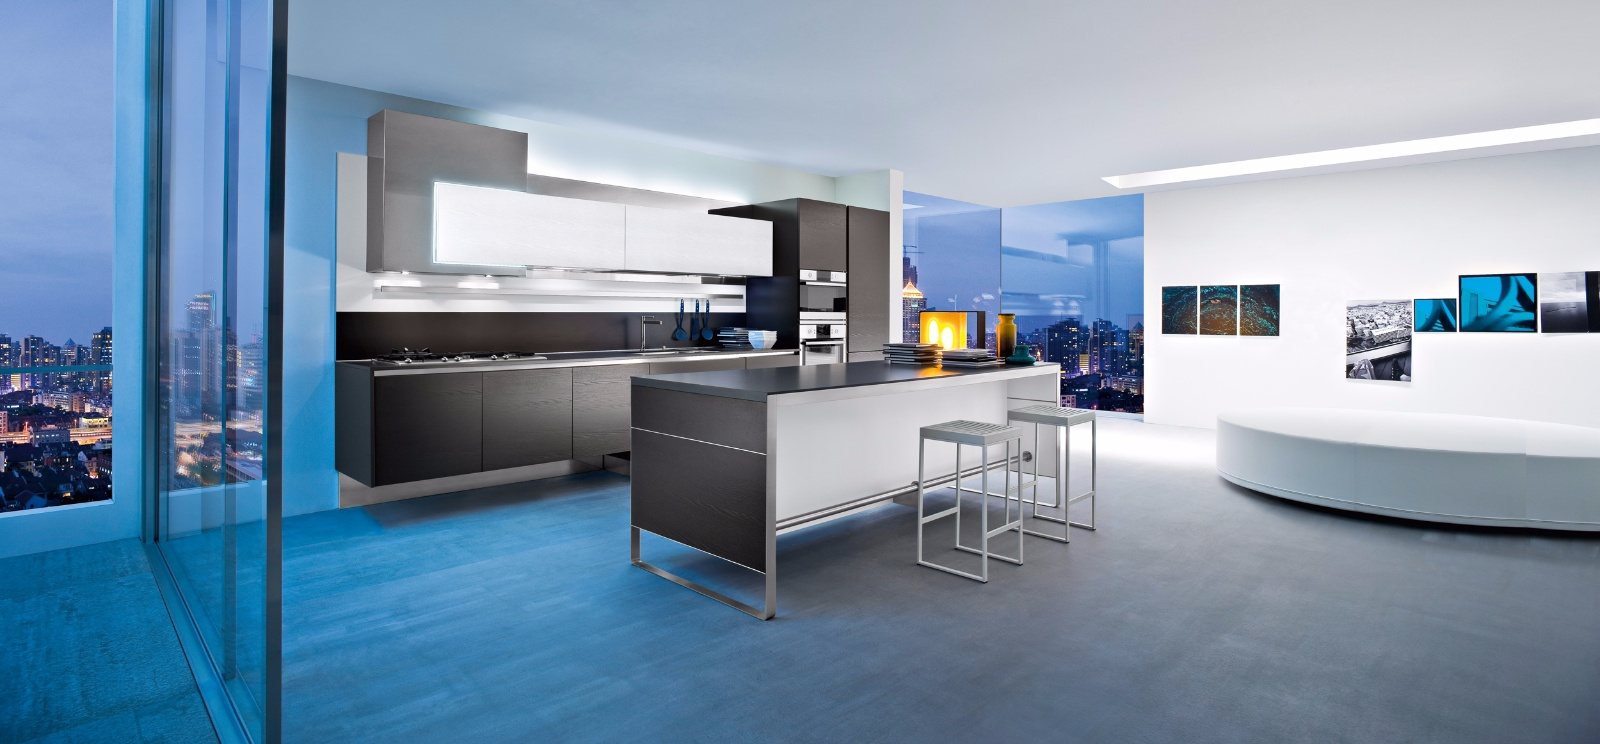 Index of /content/2.products/3.kitchens/1.Modern-Collection/26.Kia